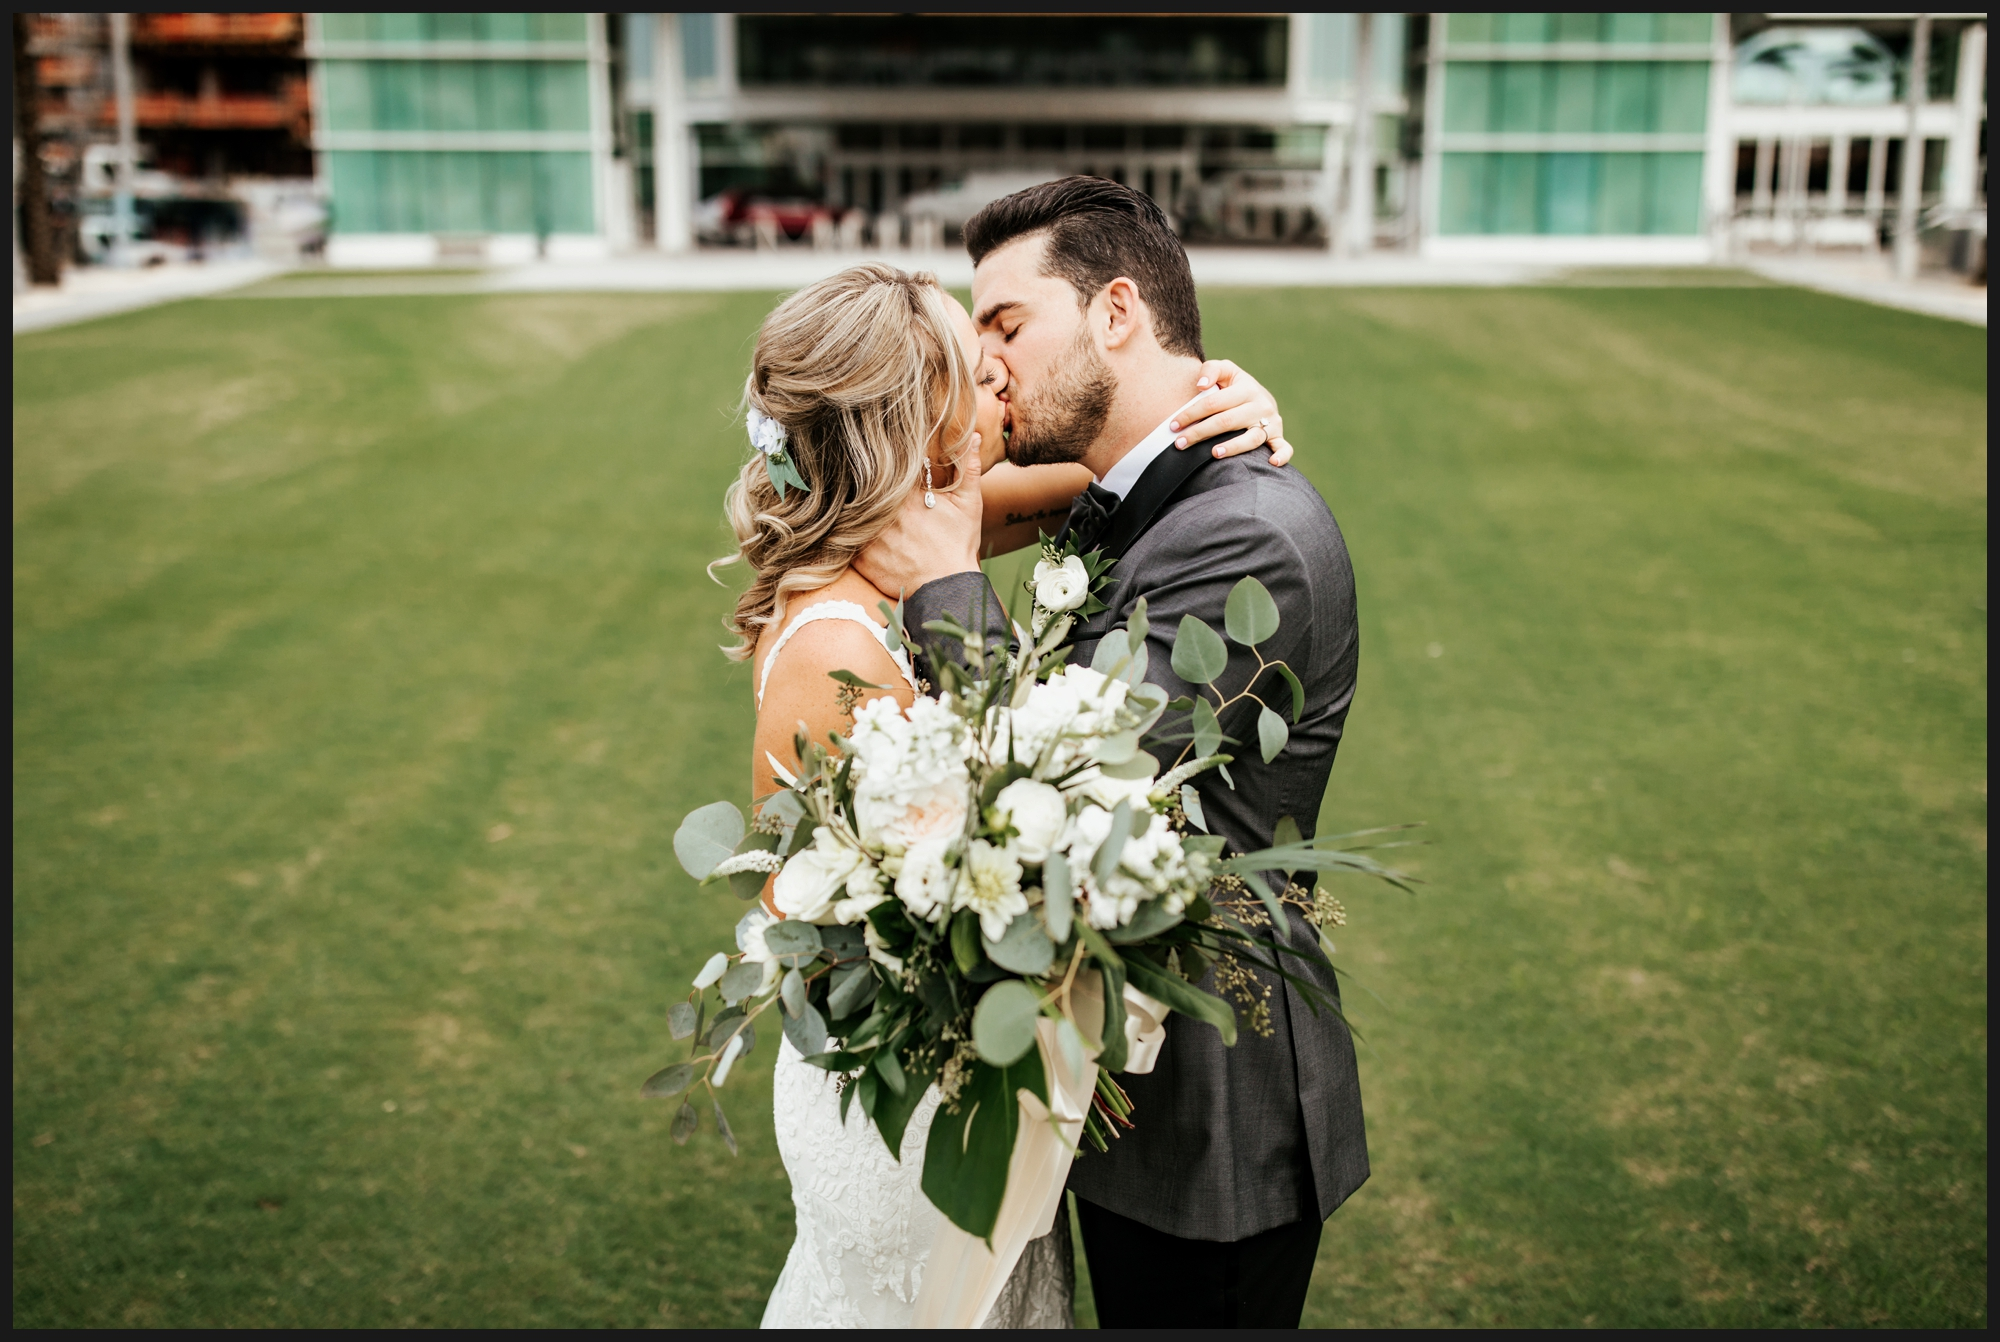 Orlando-Wedding-Photographer-destination-wedding-photographer-florida-wedding-photographer-hawaii-wedding-photographer_0417.jpg